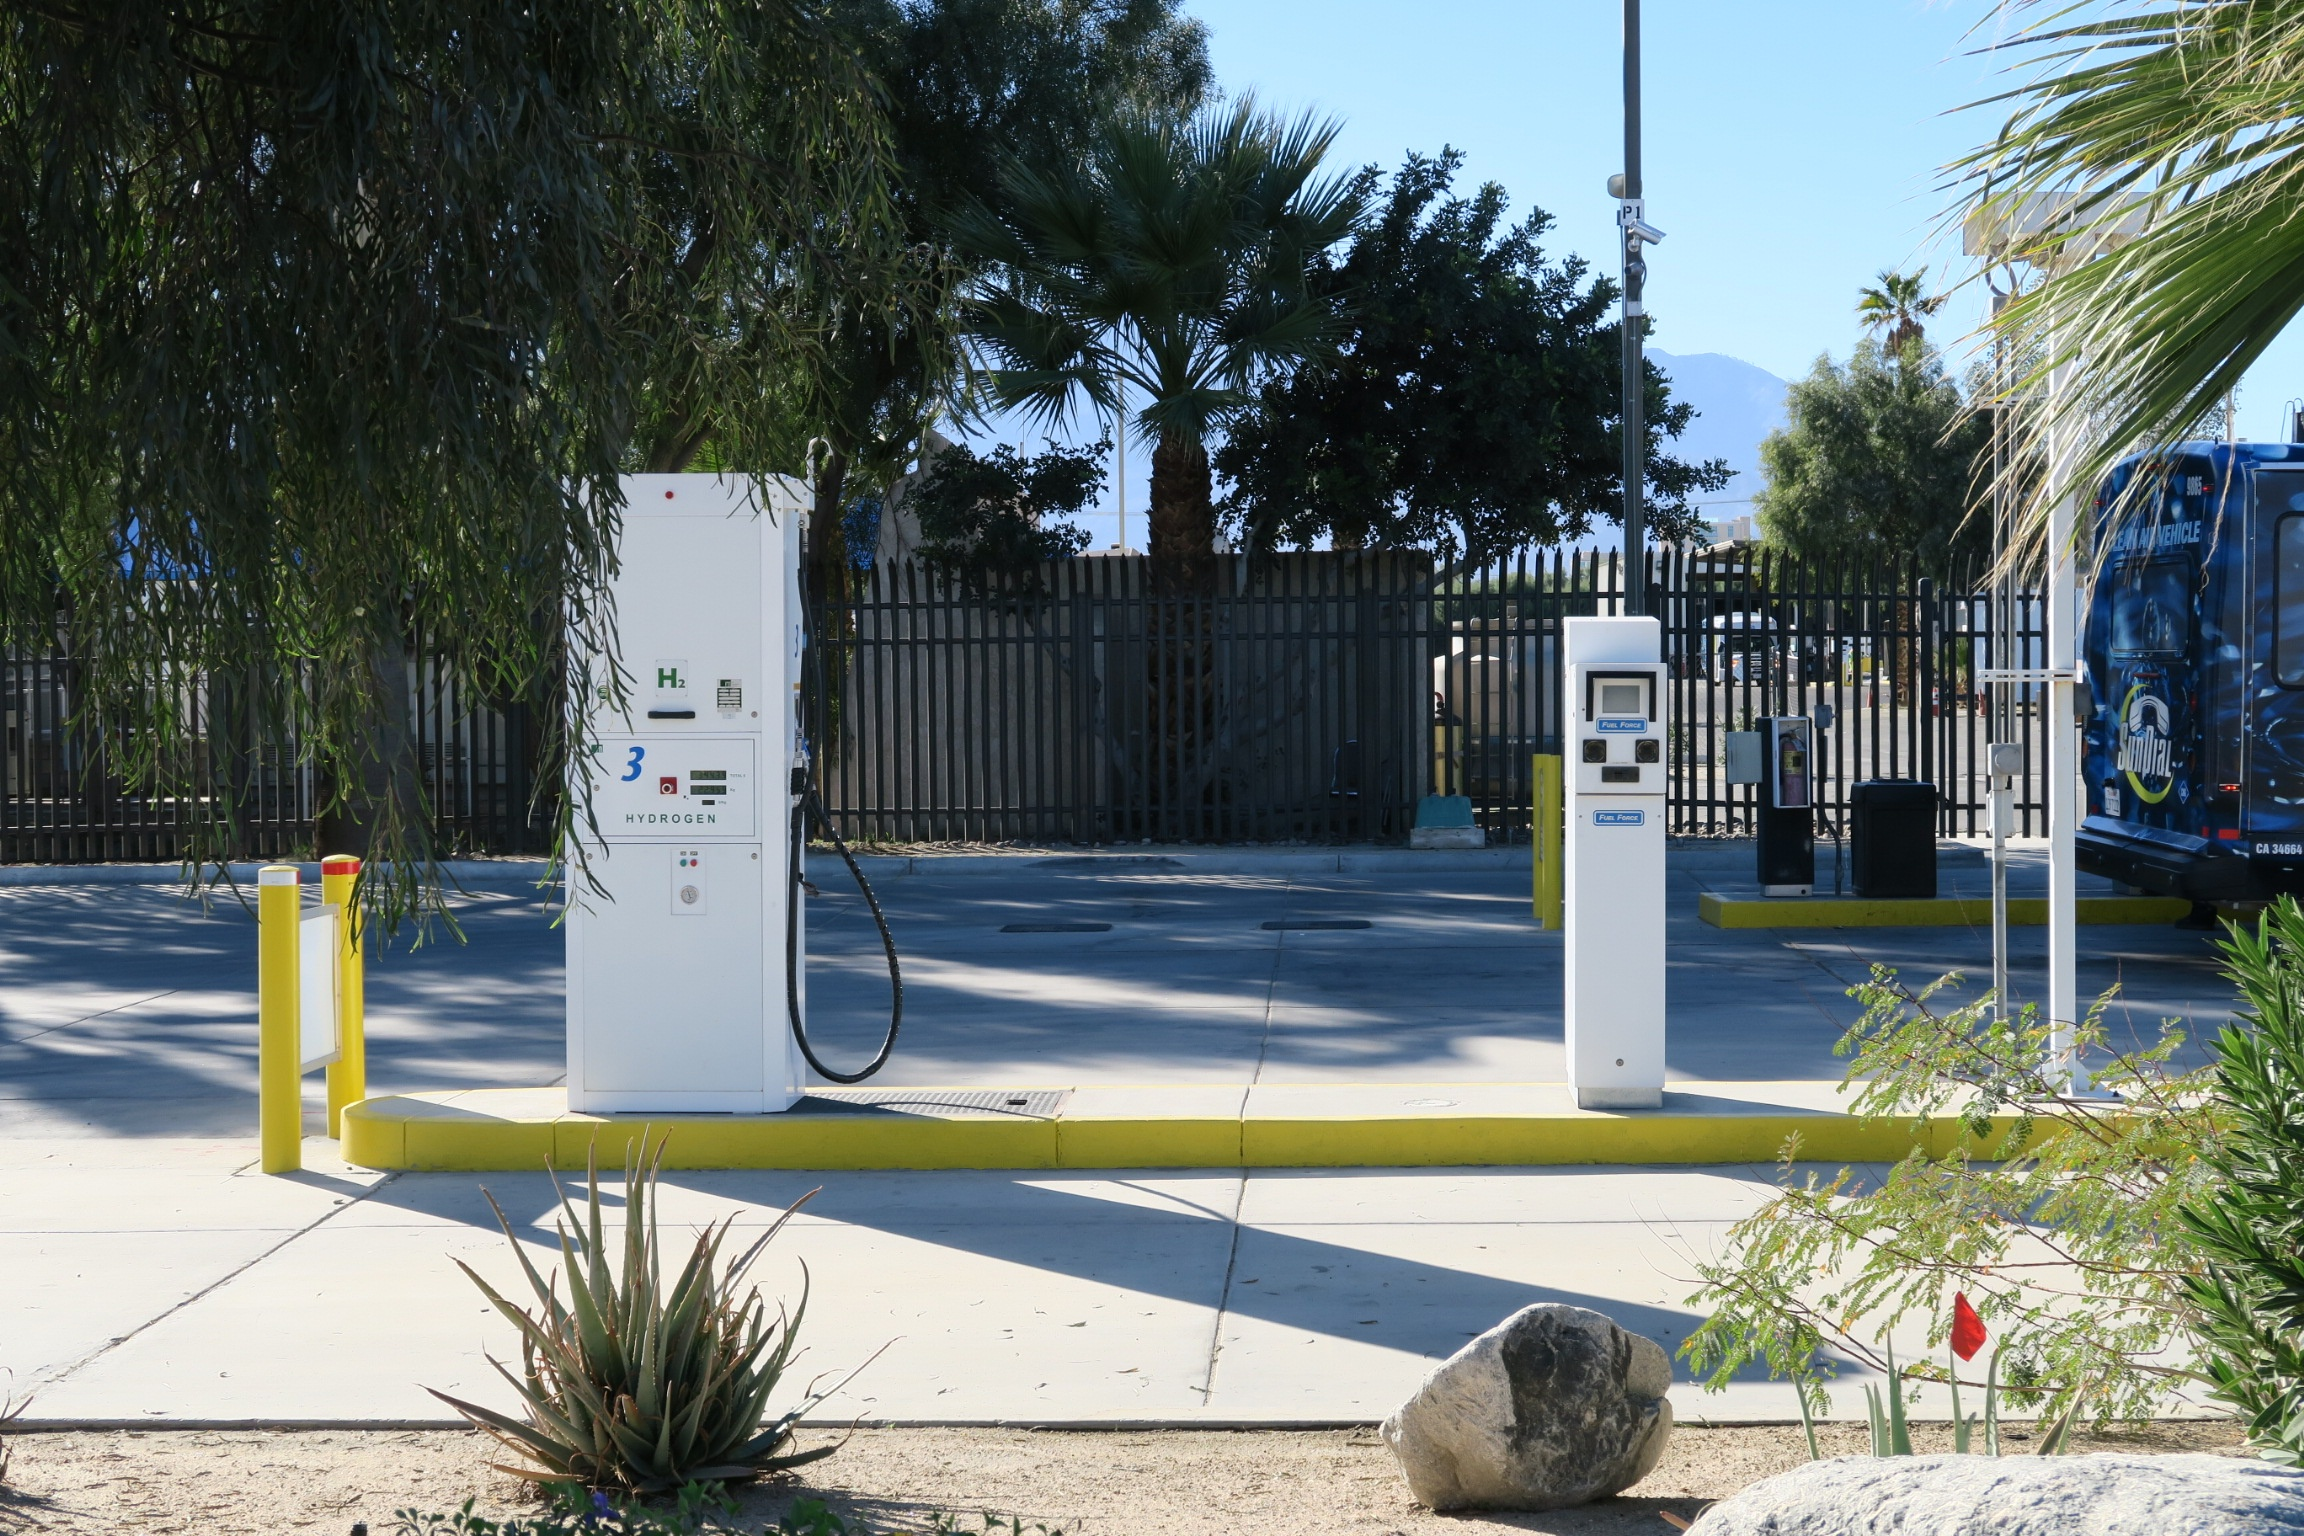 H2 fueling station Sunline facilities in California